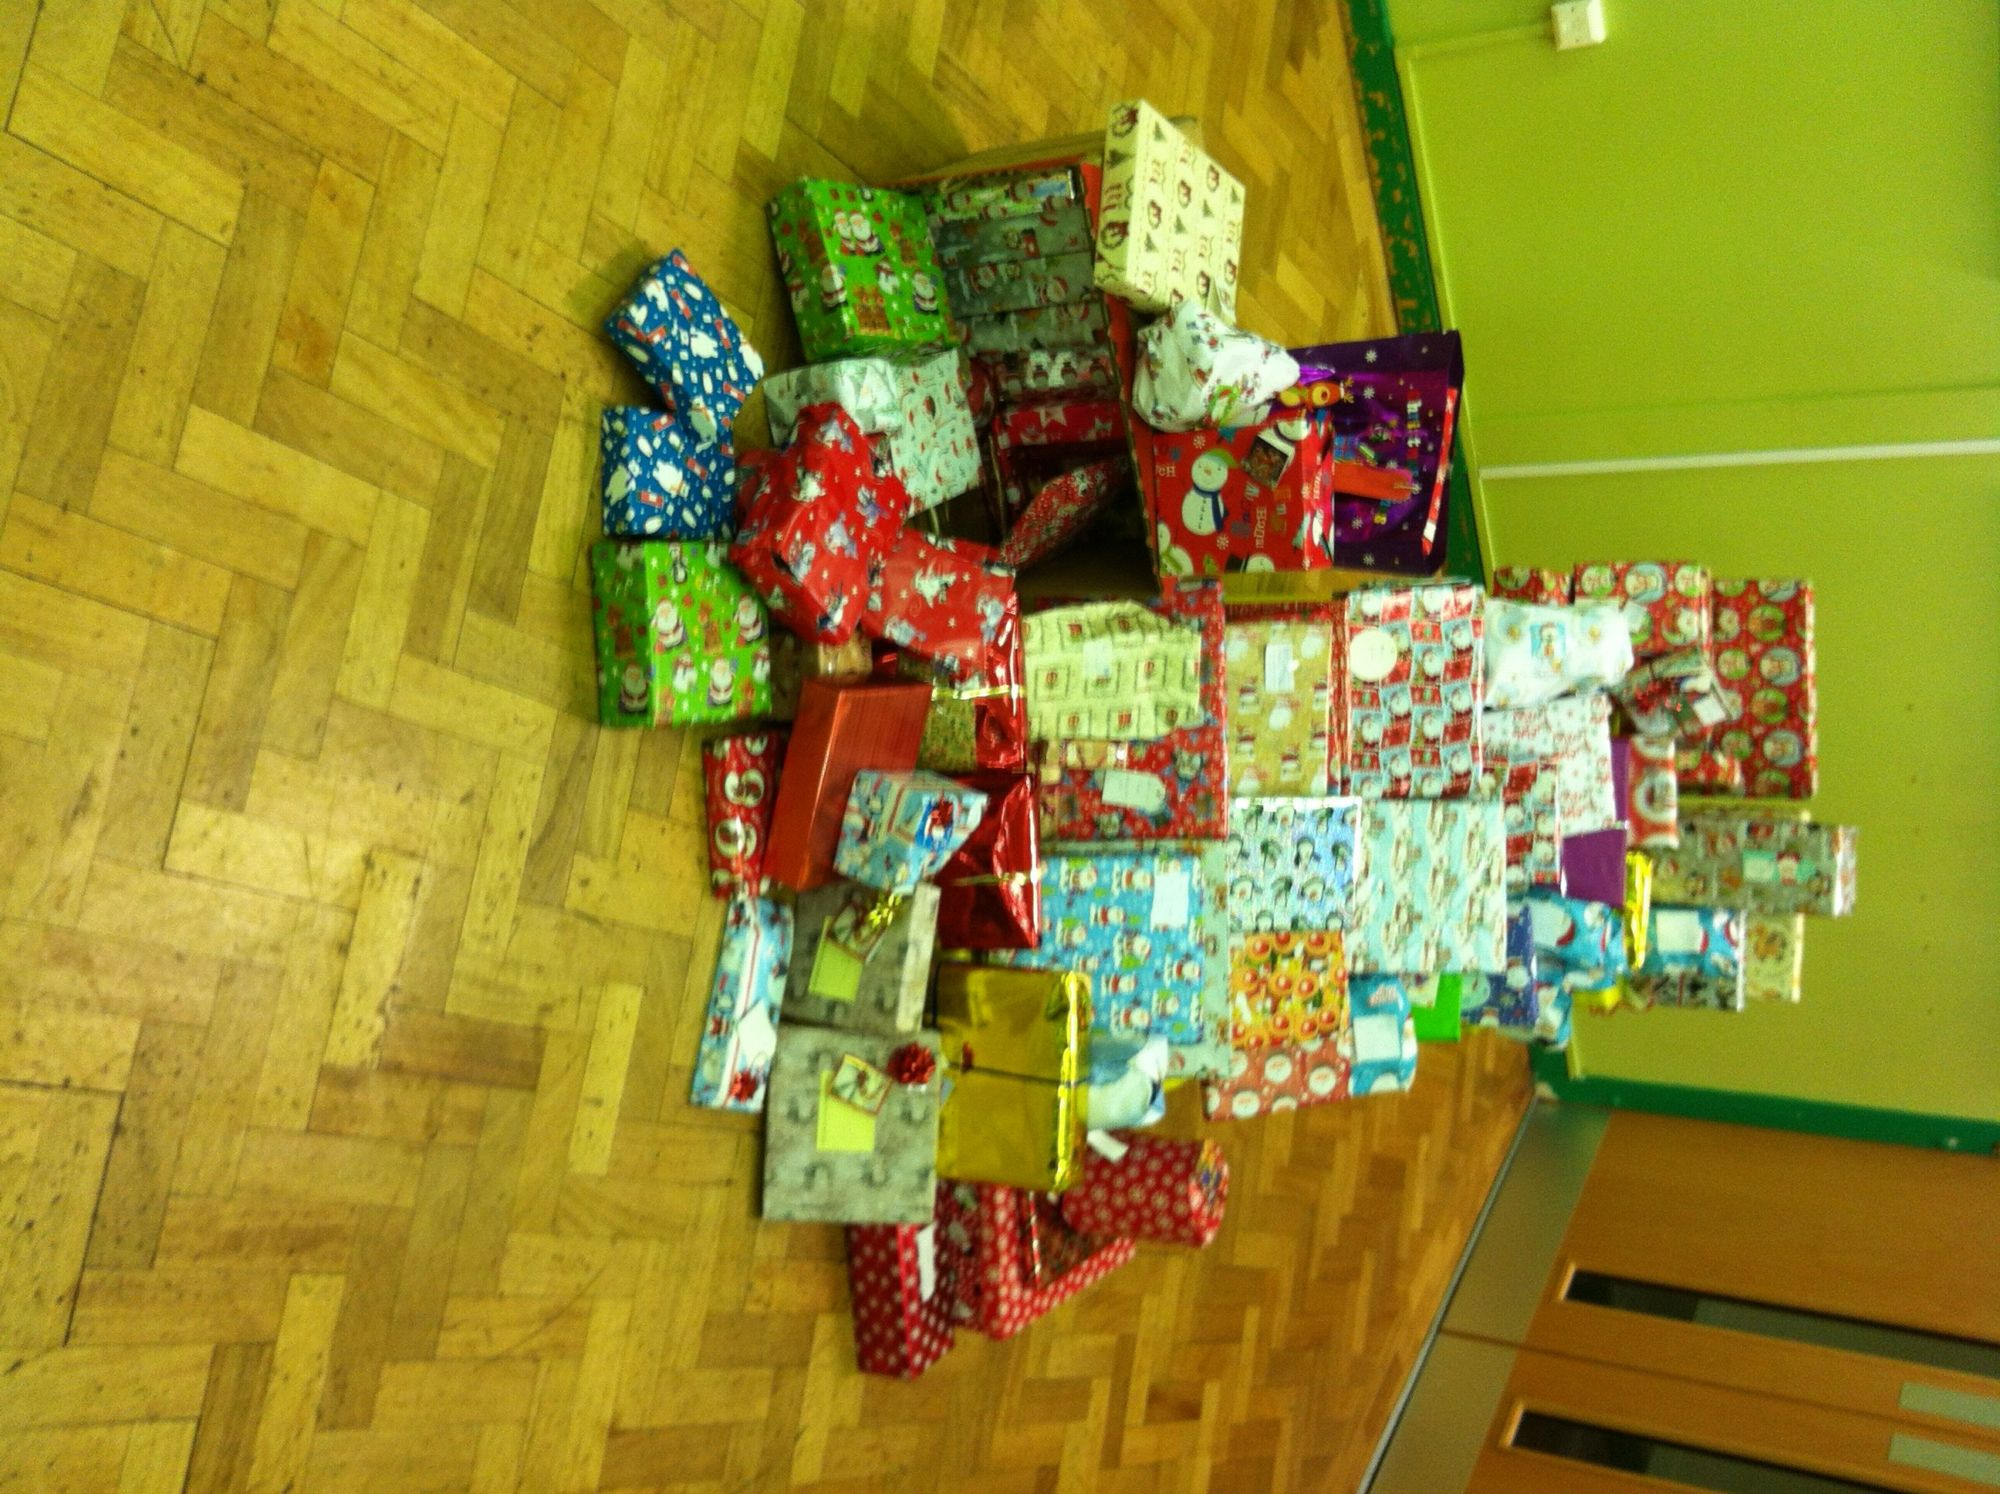 Our members just donated 203 Christmas presents for local disadvantaged Kids! Merry Christmas and Happy New Year to all. 8